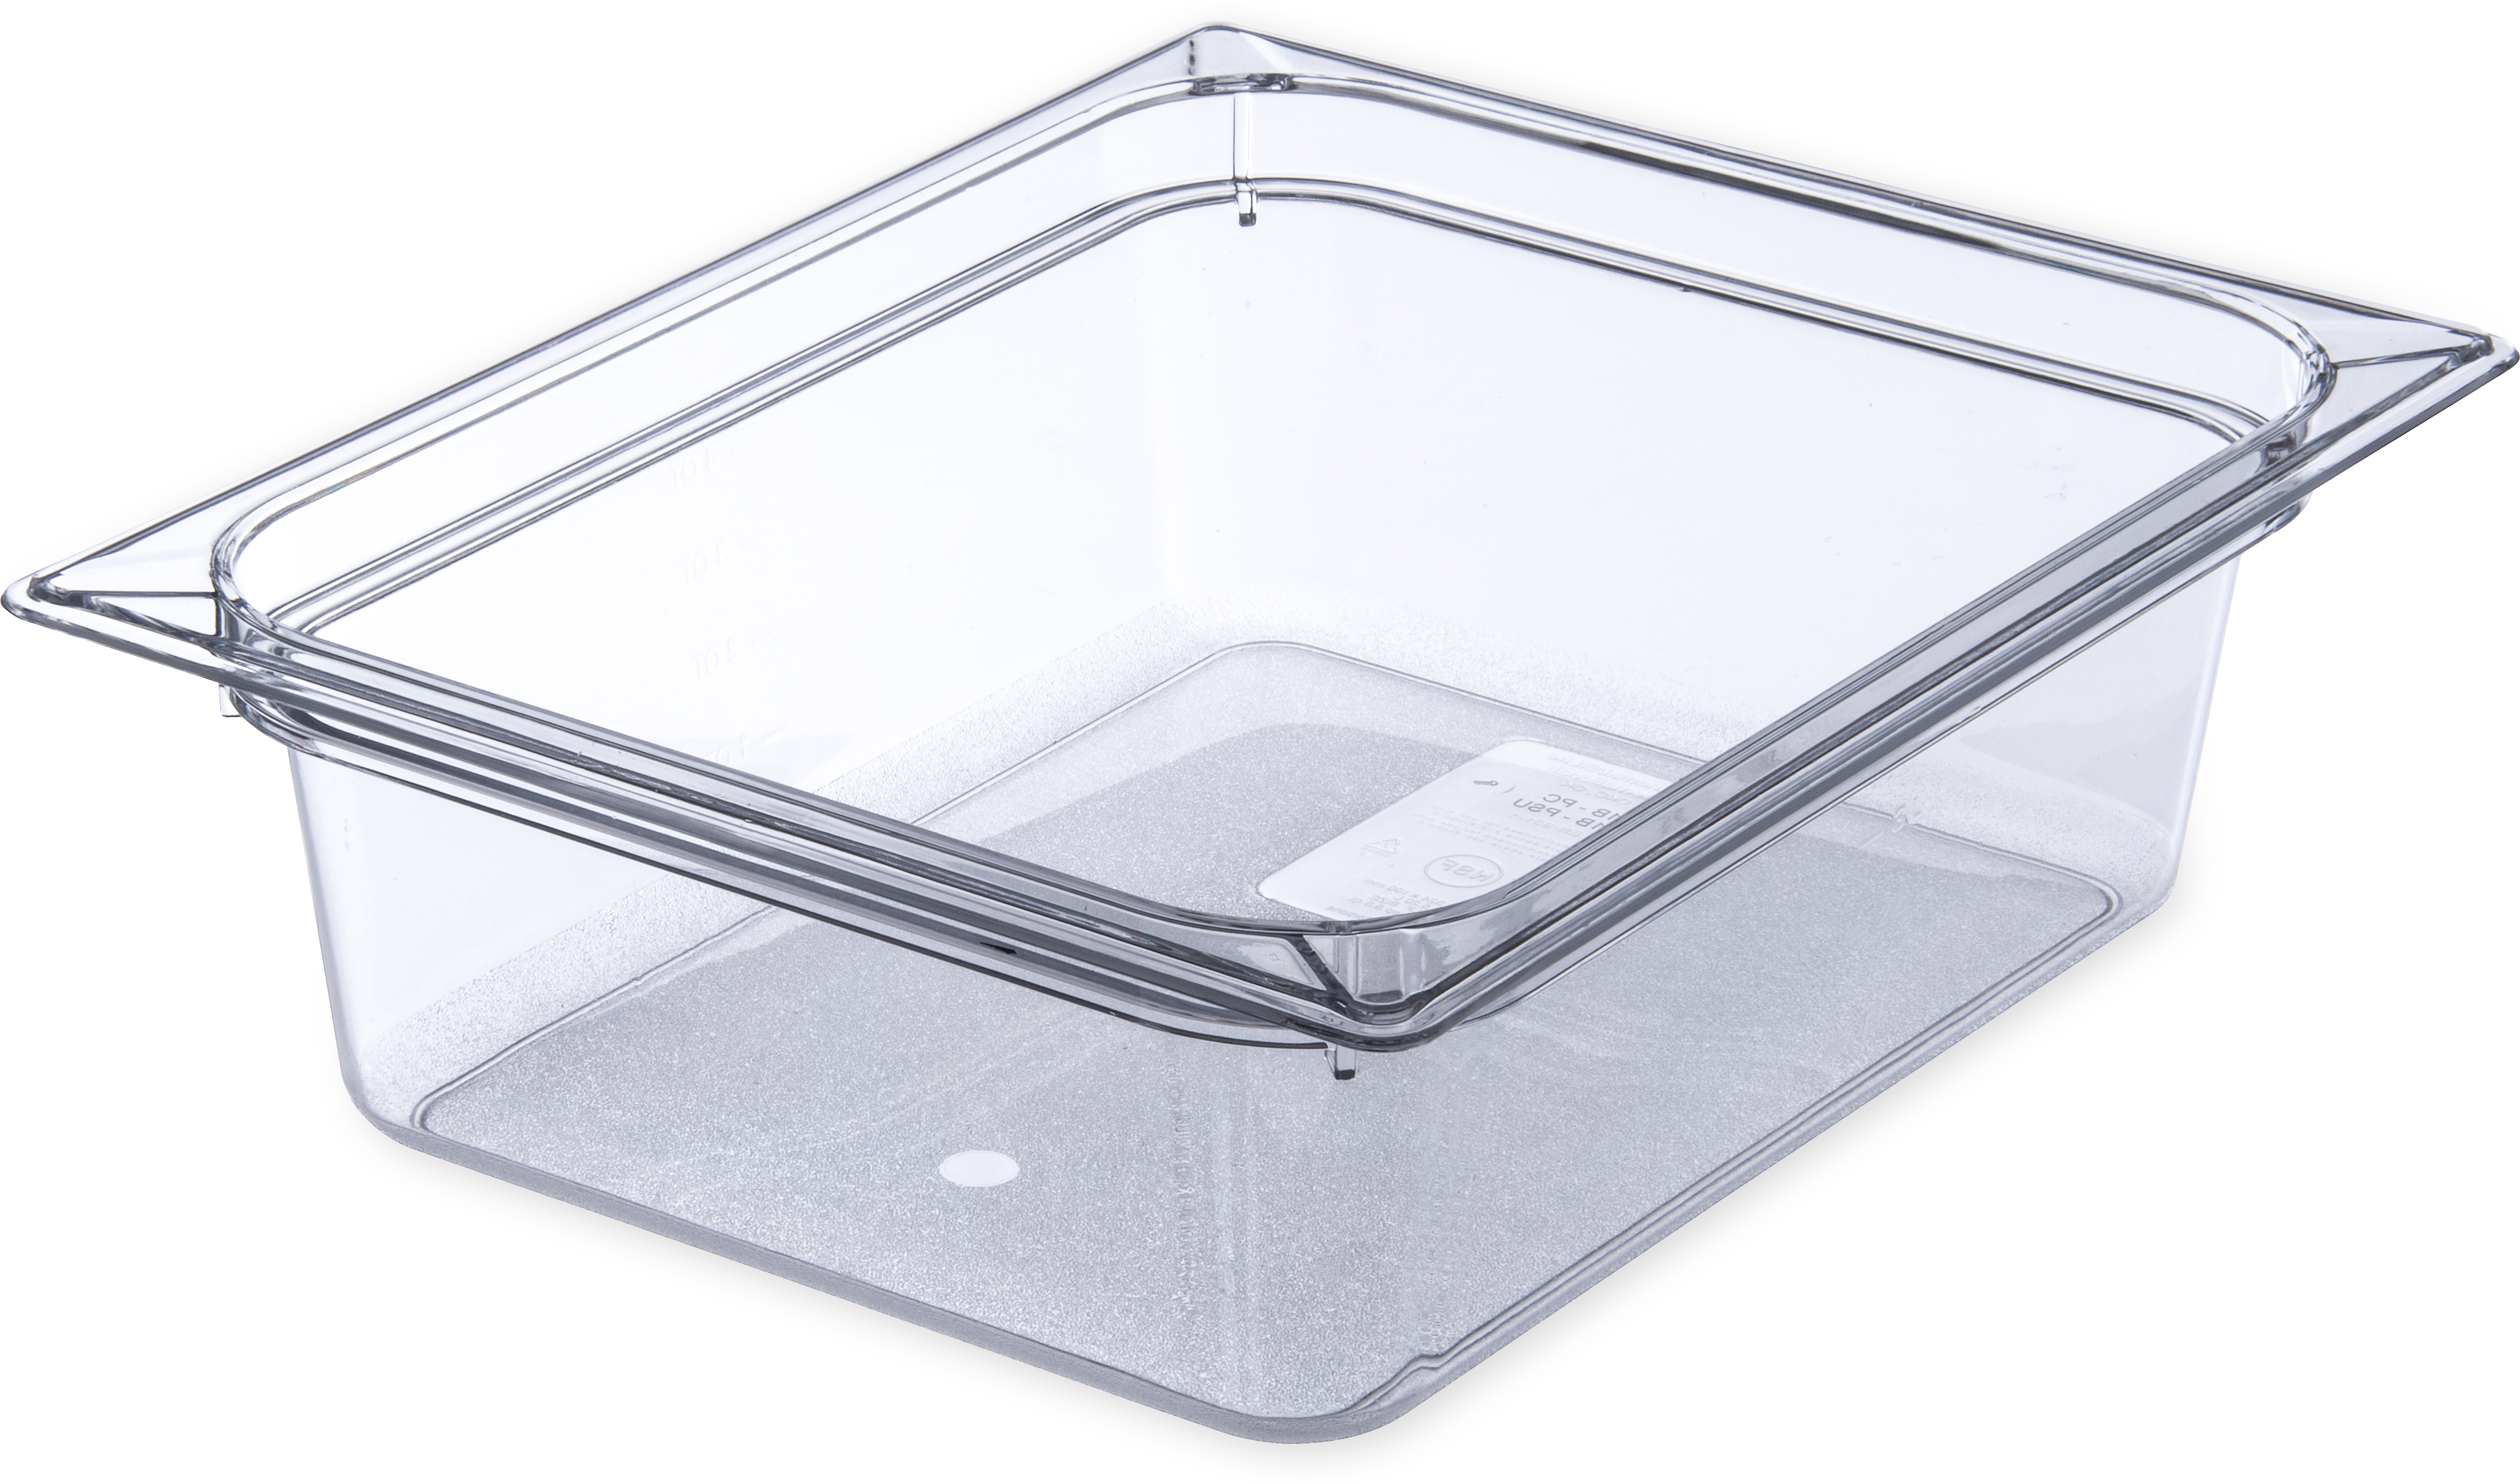 StorPlus Food Pan PC 4 DP 1/2 Size - Clear